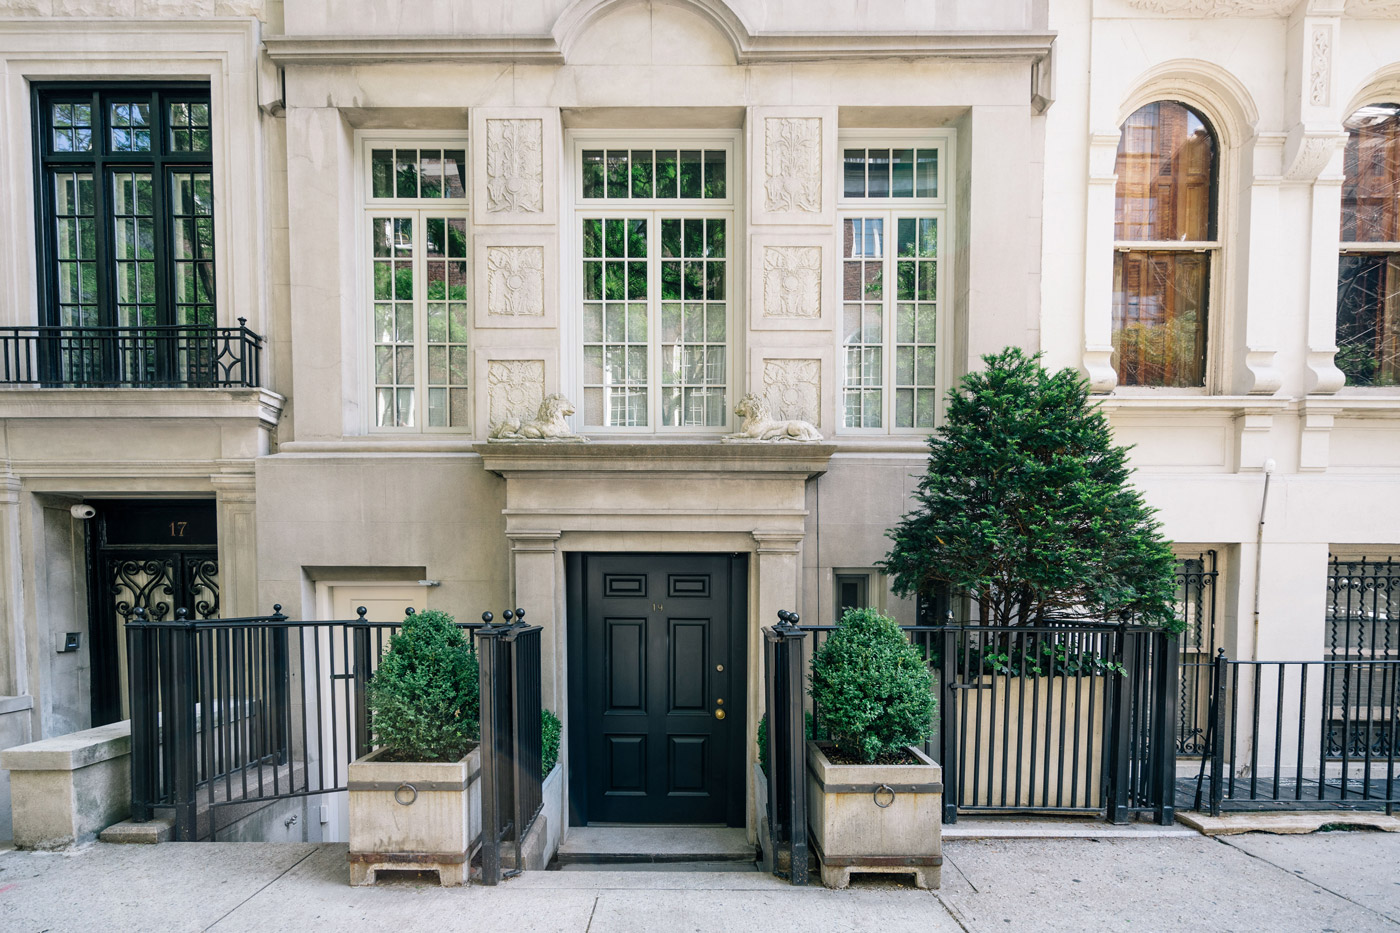 Luxurious mansions for sale in Carnegie Hill